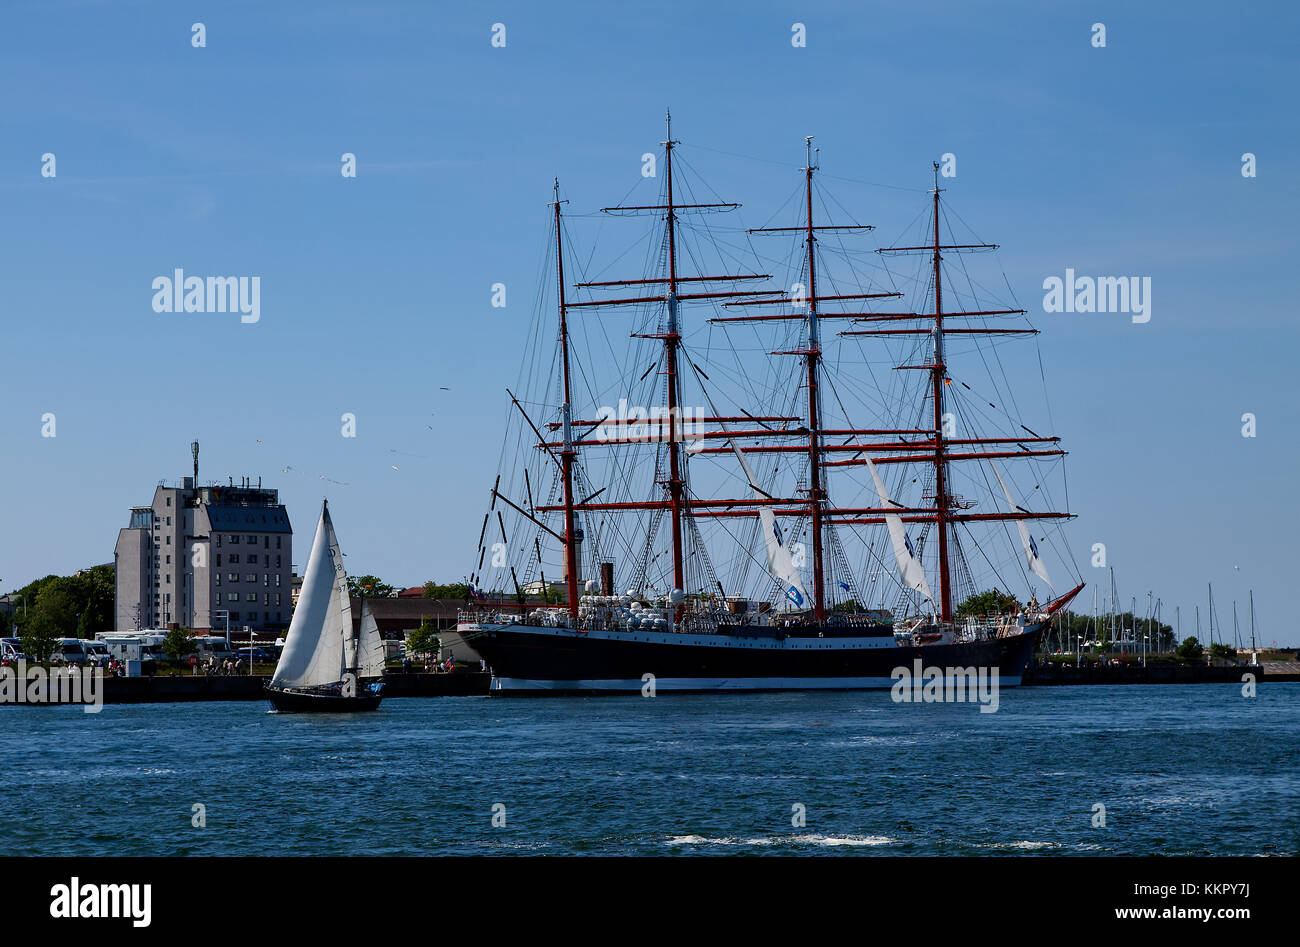 Big Sailor and small sailboat in harbour - Stock Image